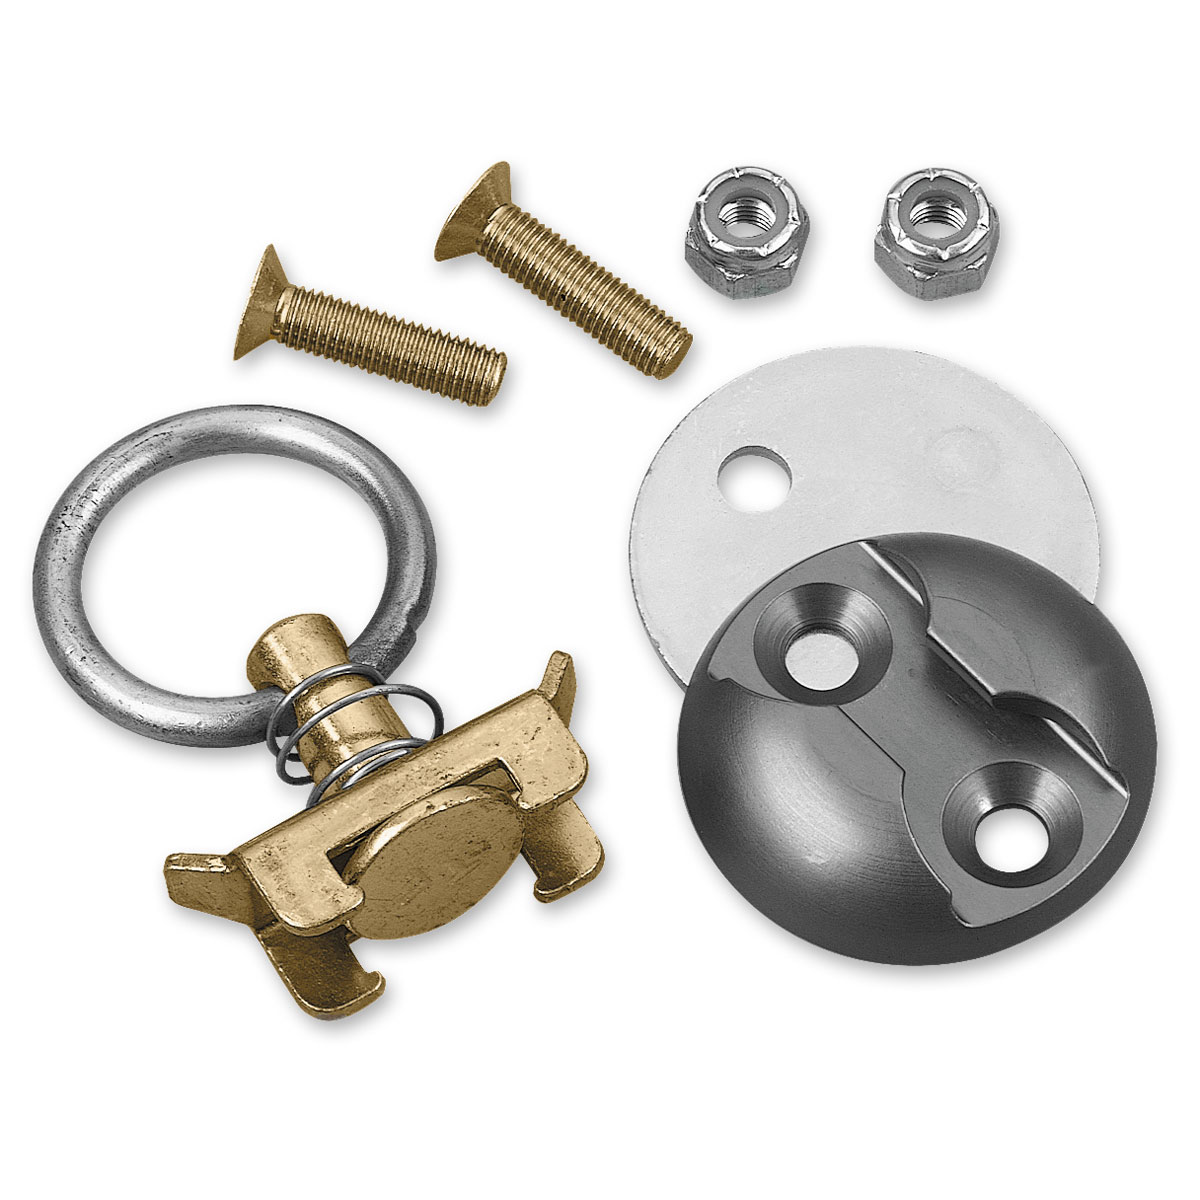 ANCRA Tie-Down Fitting Kit